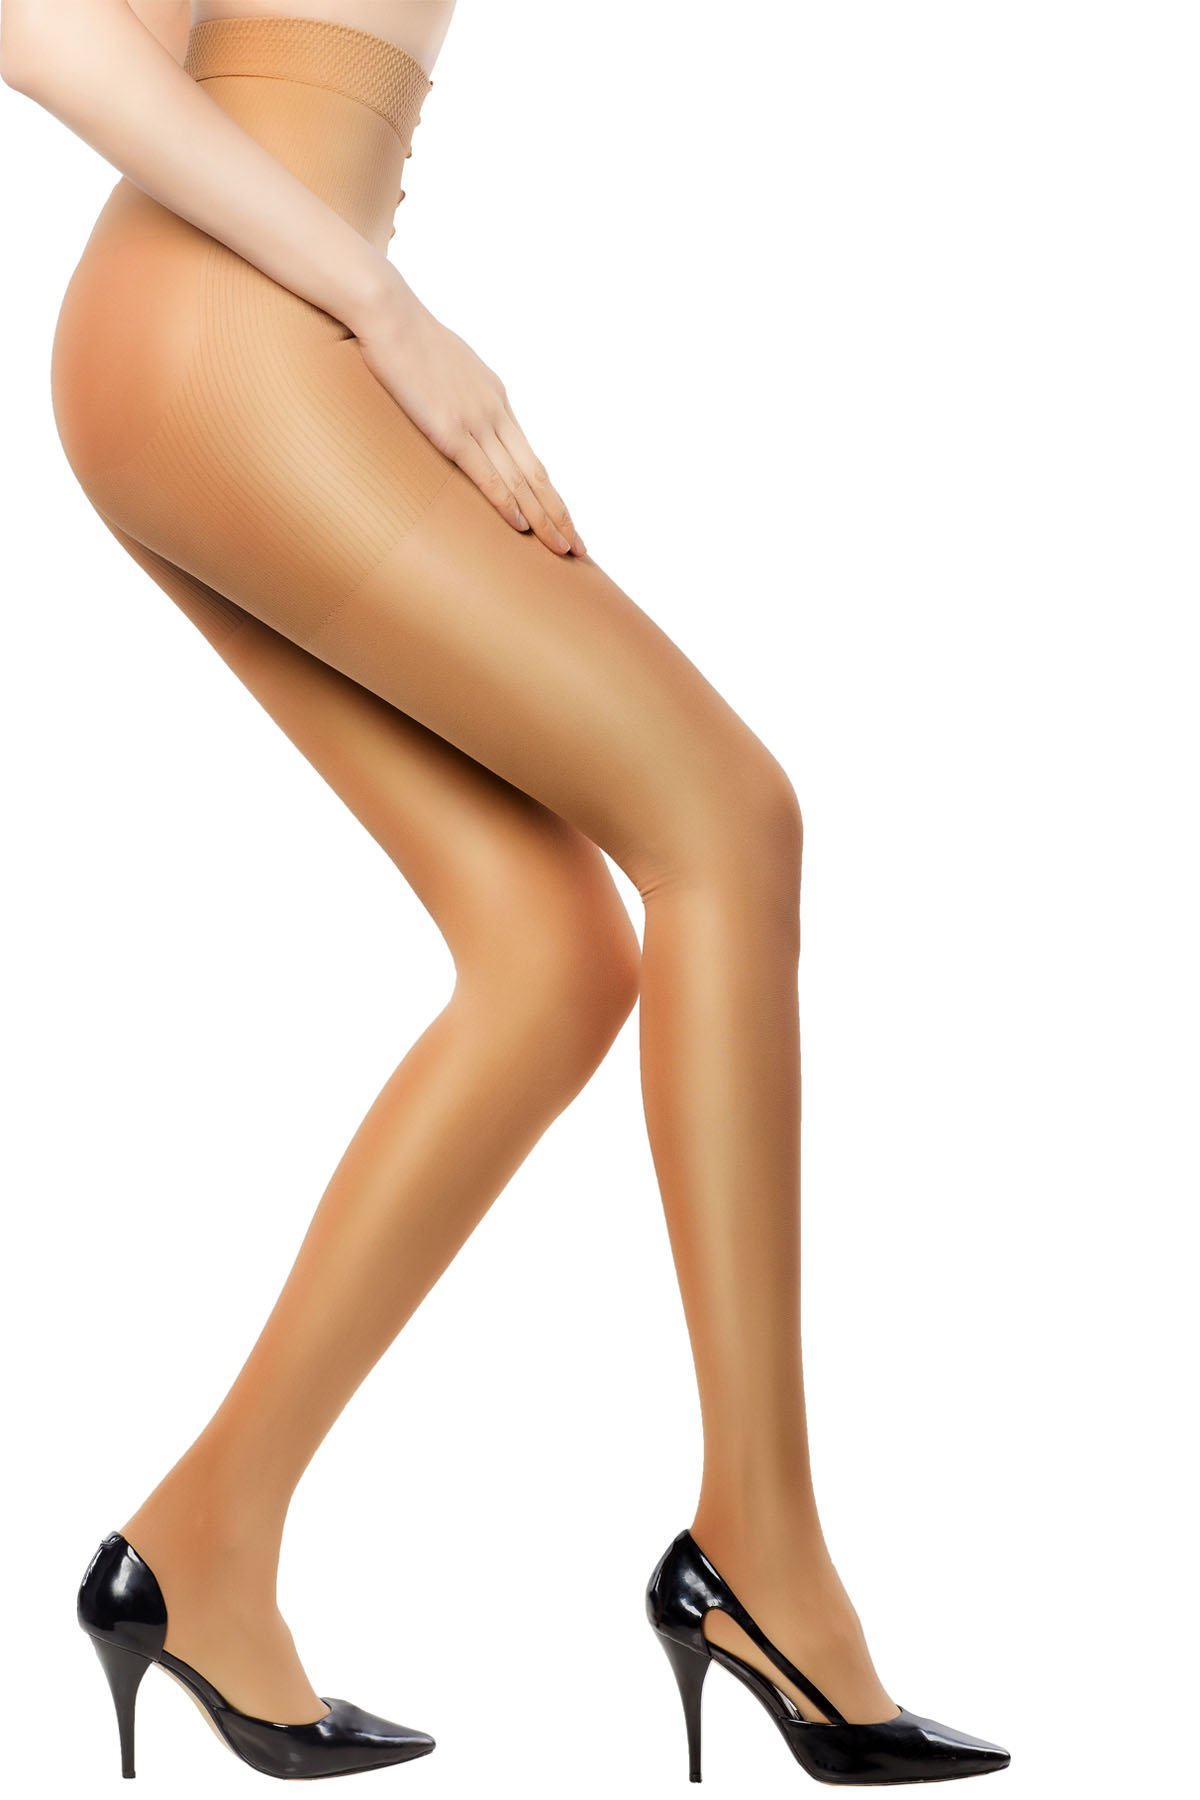 MD 15-20mmHg Women's Comfy Compression Pantyhose For Winter Medical Quality Ladies Support Stocking NudeS